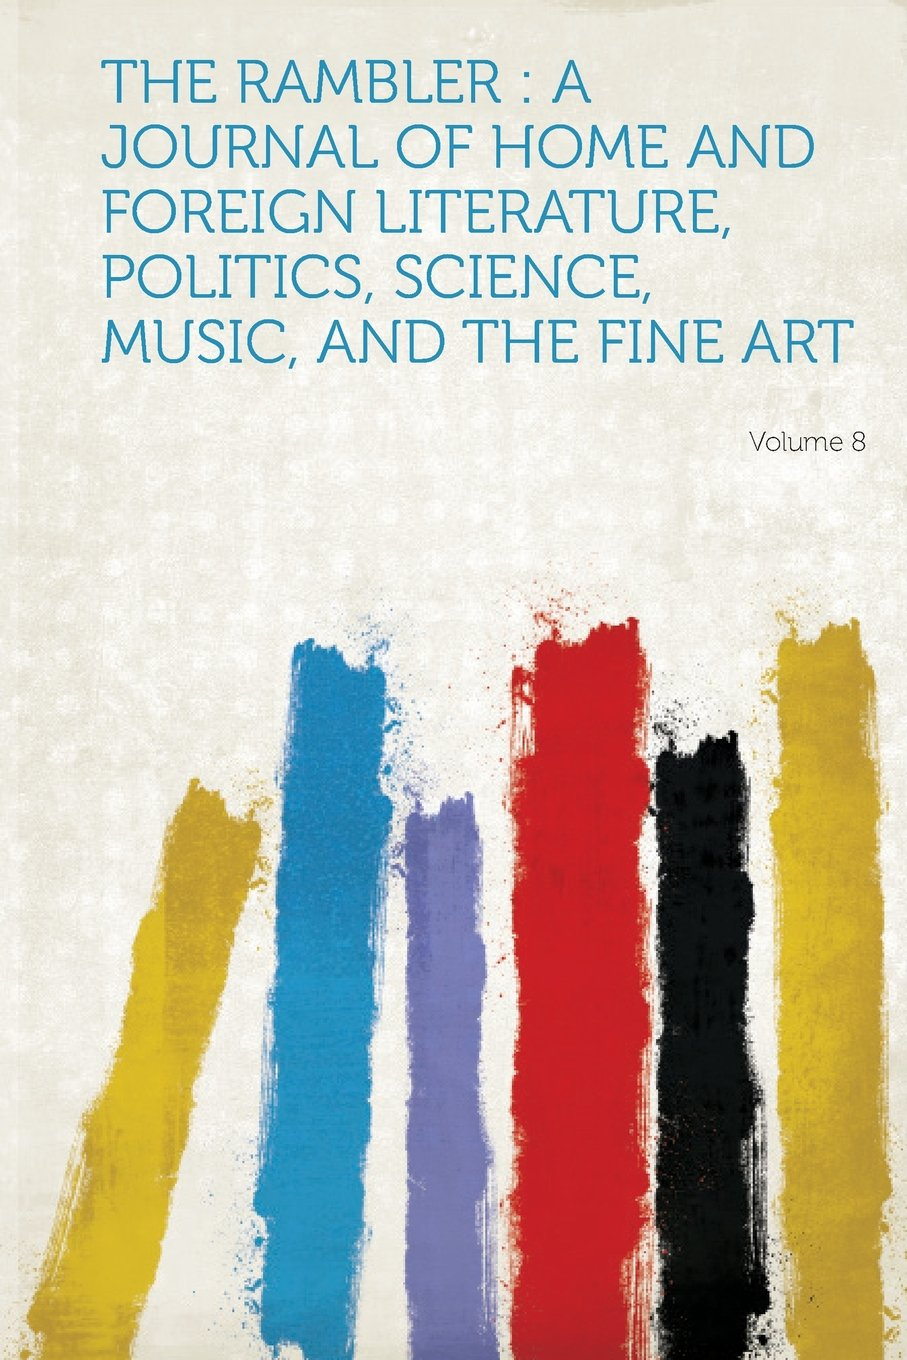 Download The Rambler: A Journal of Home and Foreign Literature, Politics, Science, Music, and the Fine Art Volume 8 pdf